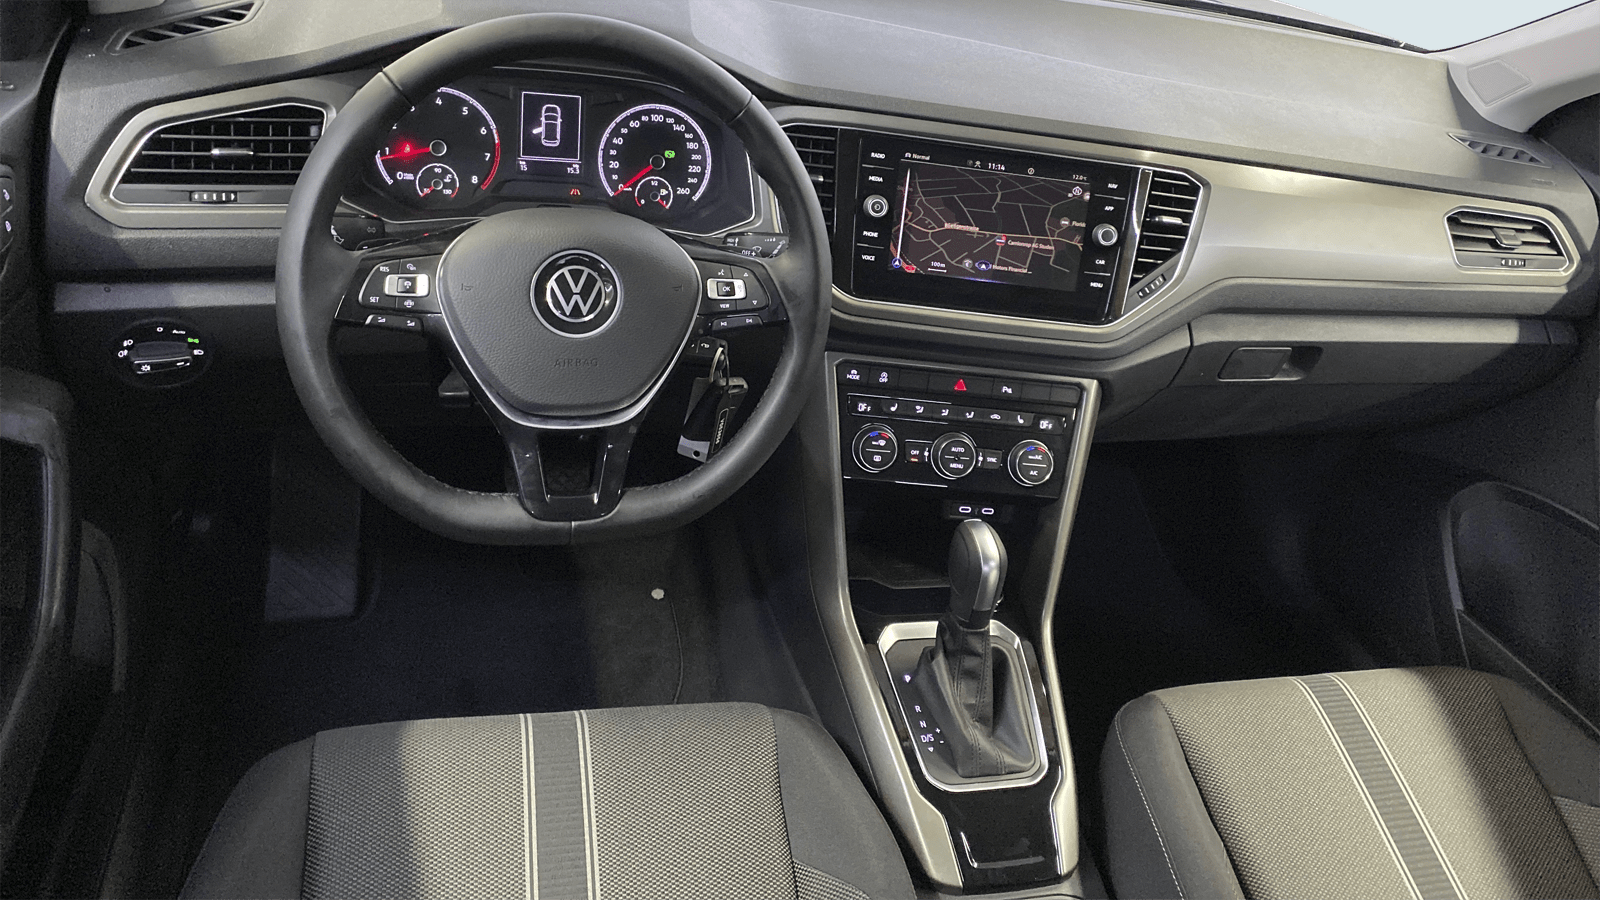 VW T-Roc Grey interior - Clyde car subscription